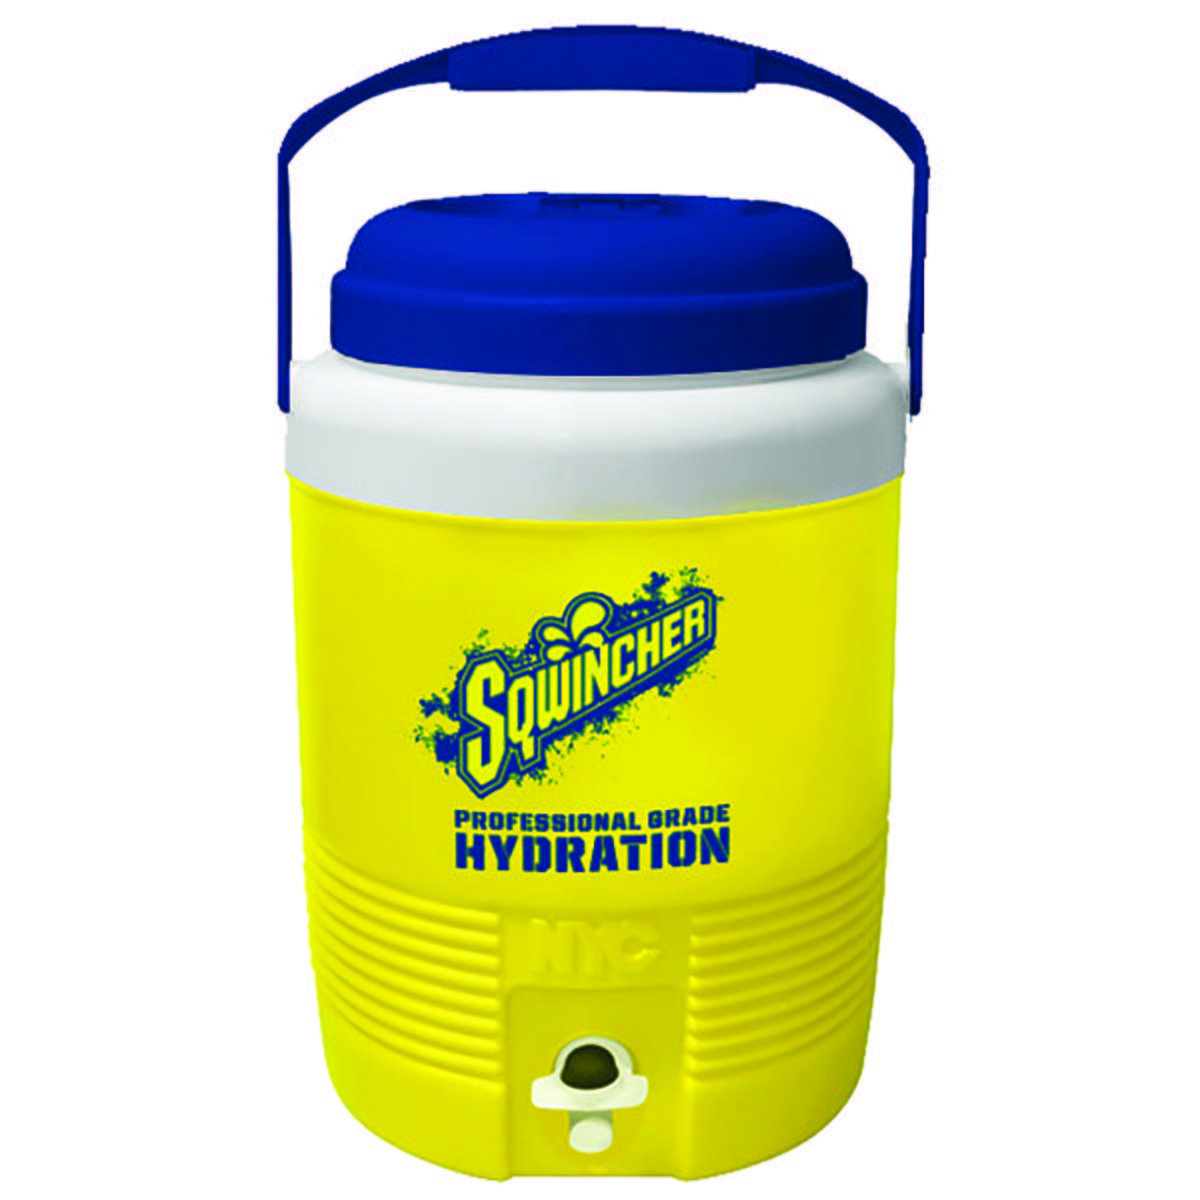 2 gal Insulated Cooler